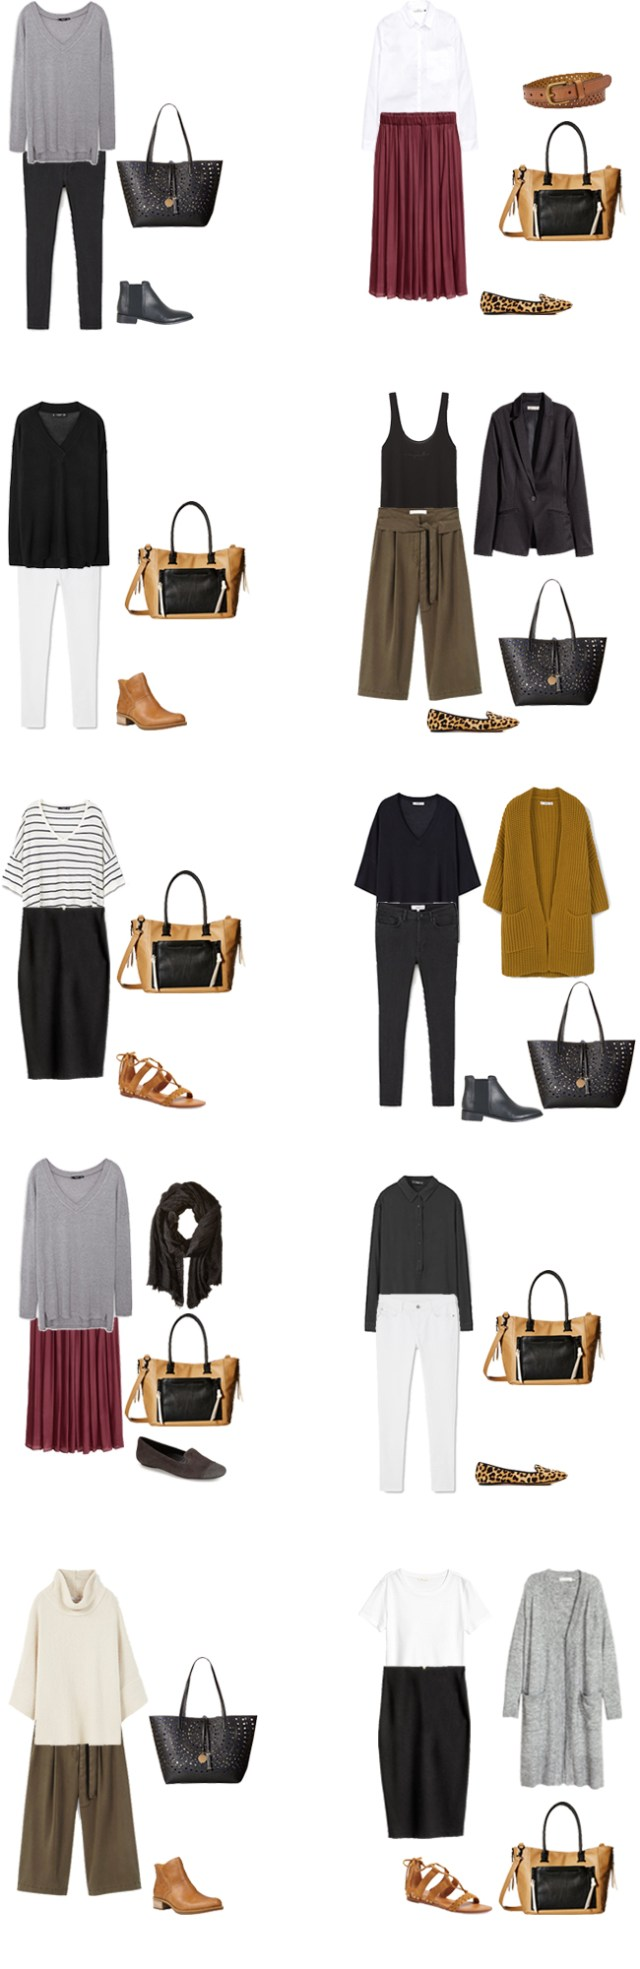 Teacher Capsule What to Wear Outfit Options 21-30 #capsule #capsulewardrobe #whattowear #teacherwardrobe